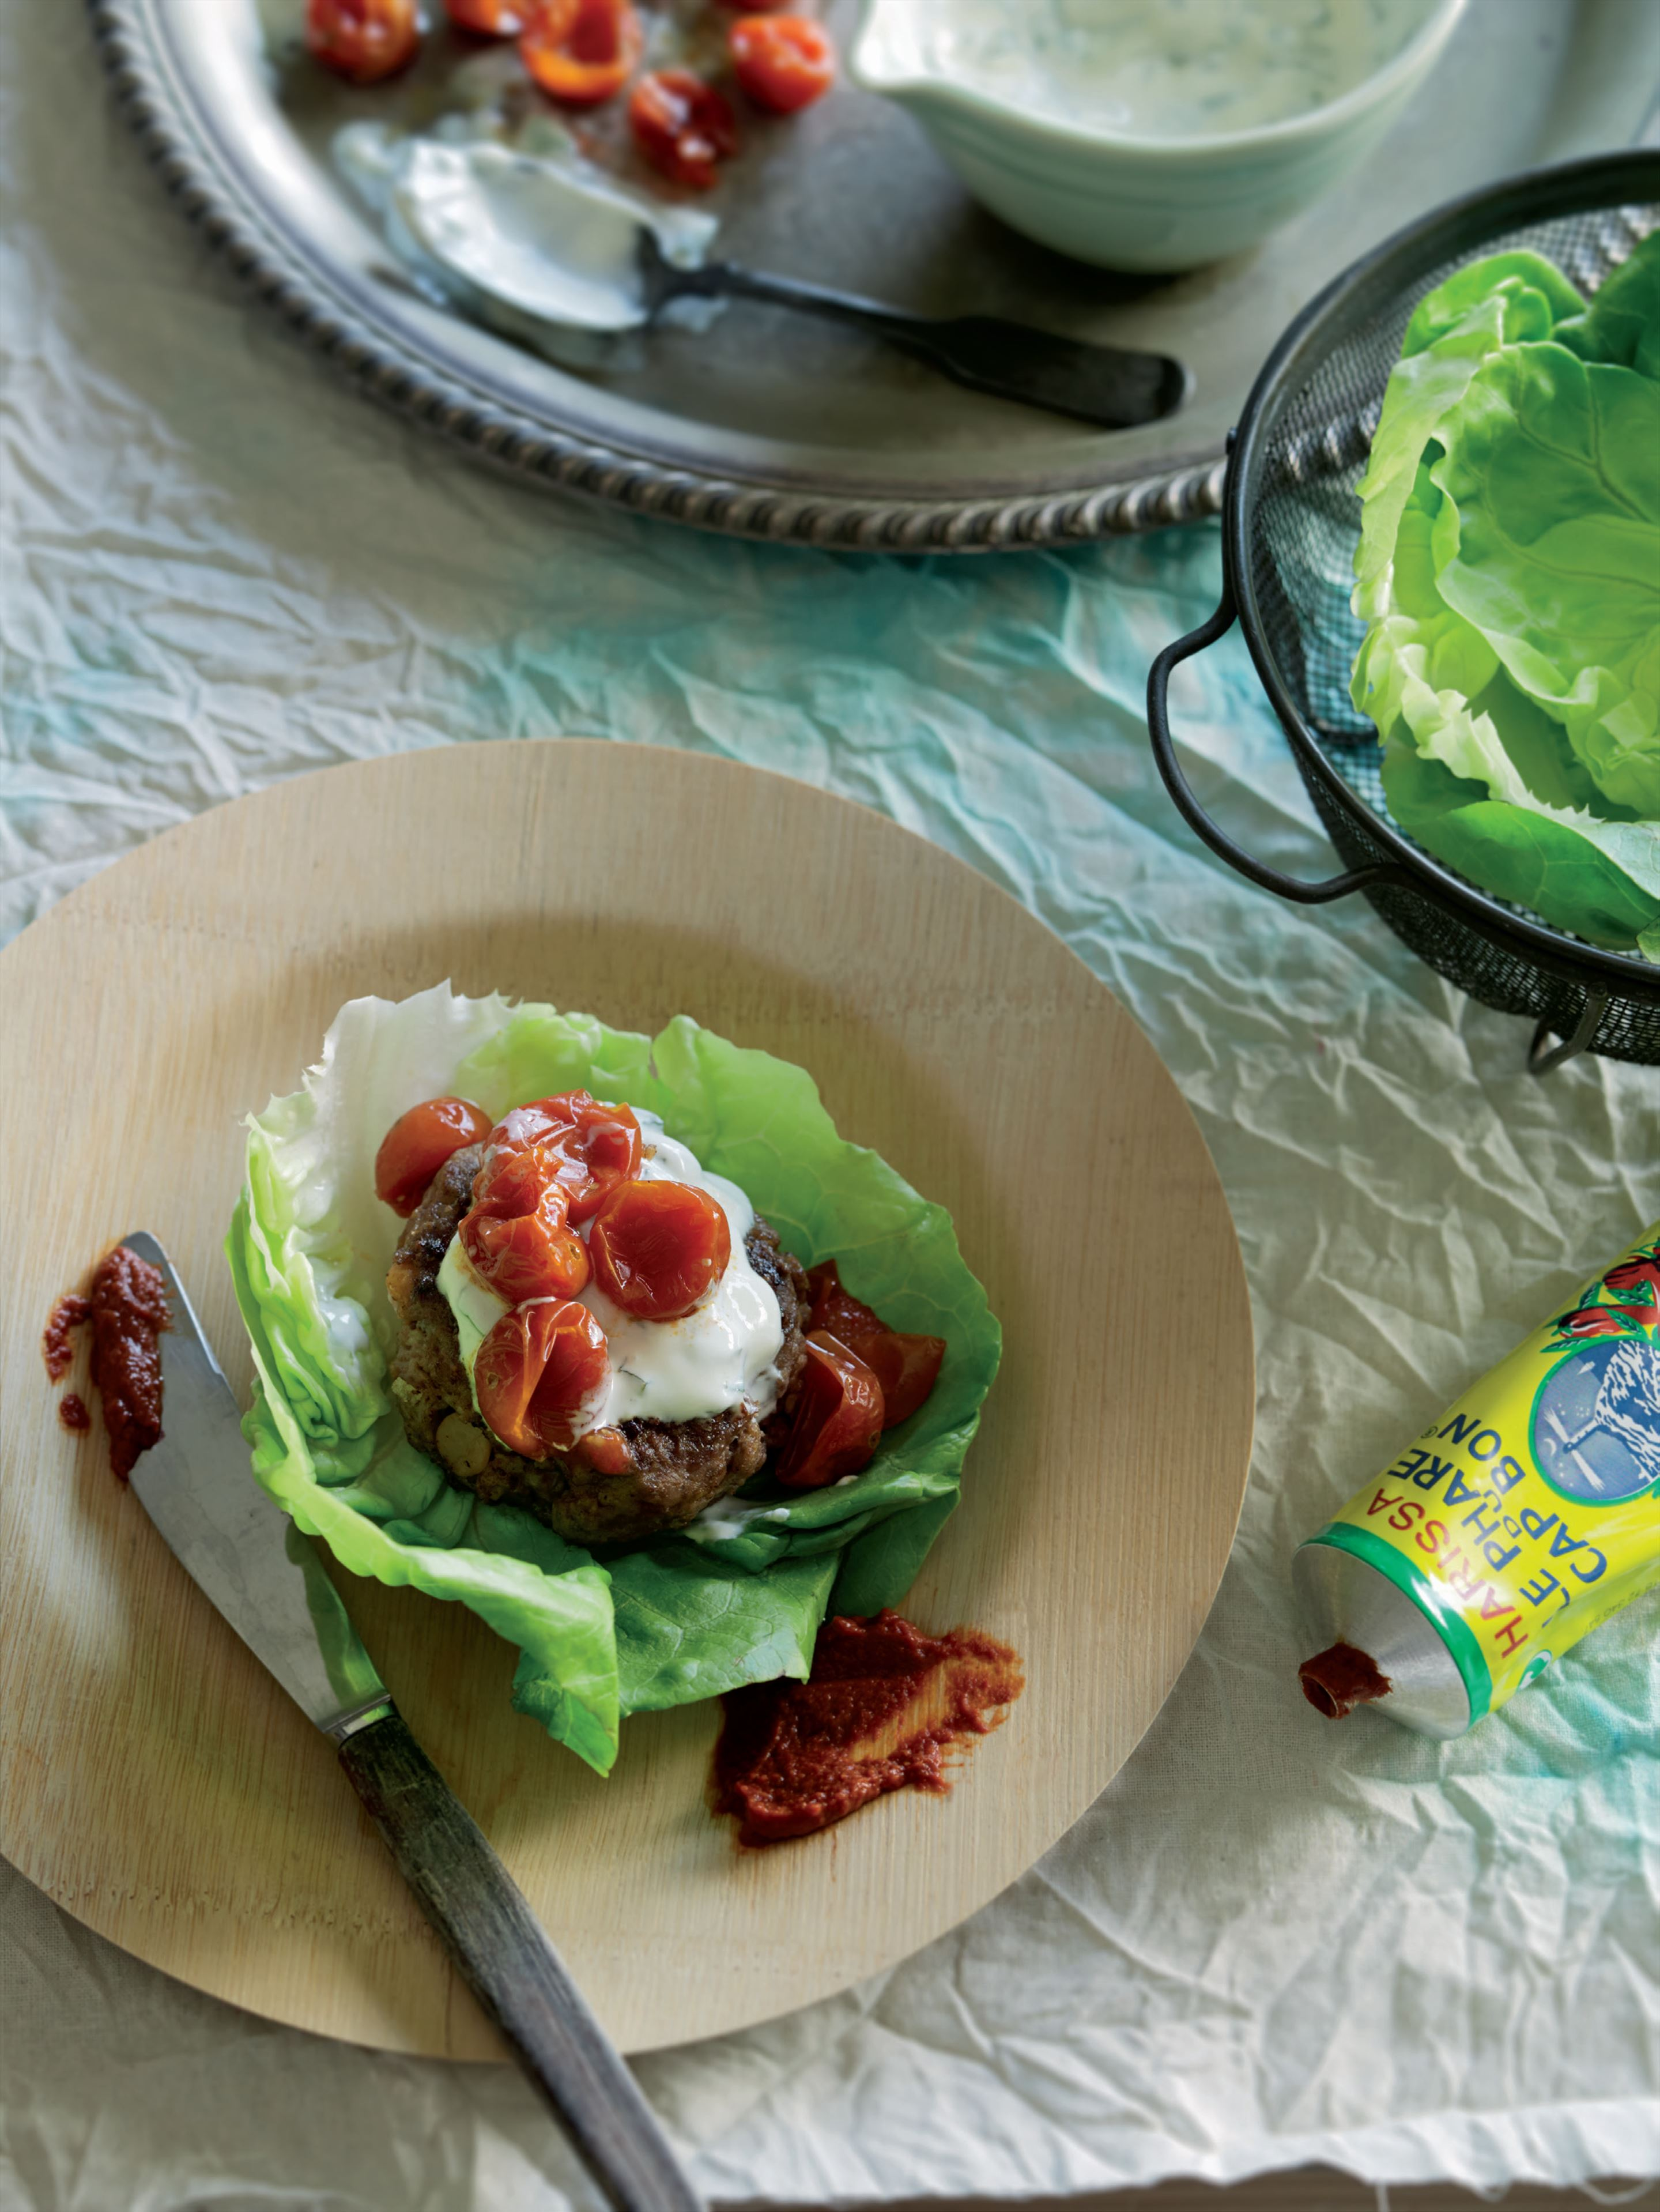 Moroccan lamb and chickpea burgers in lettuce leaves